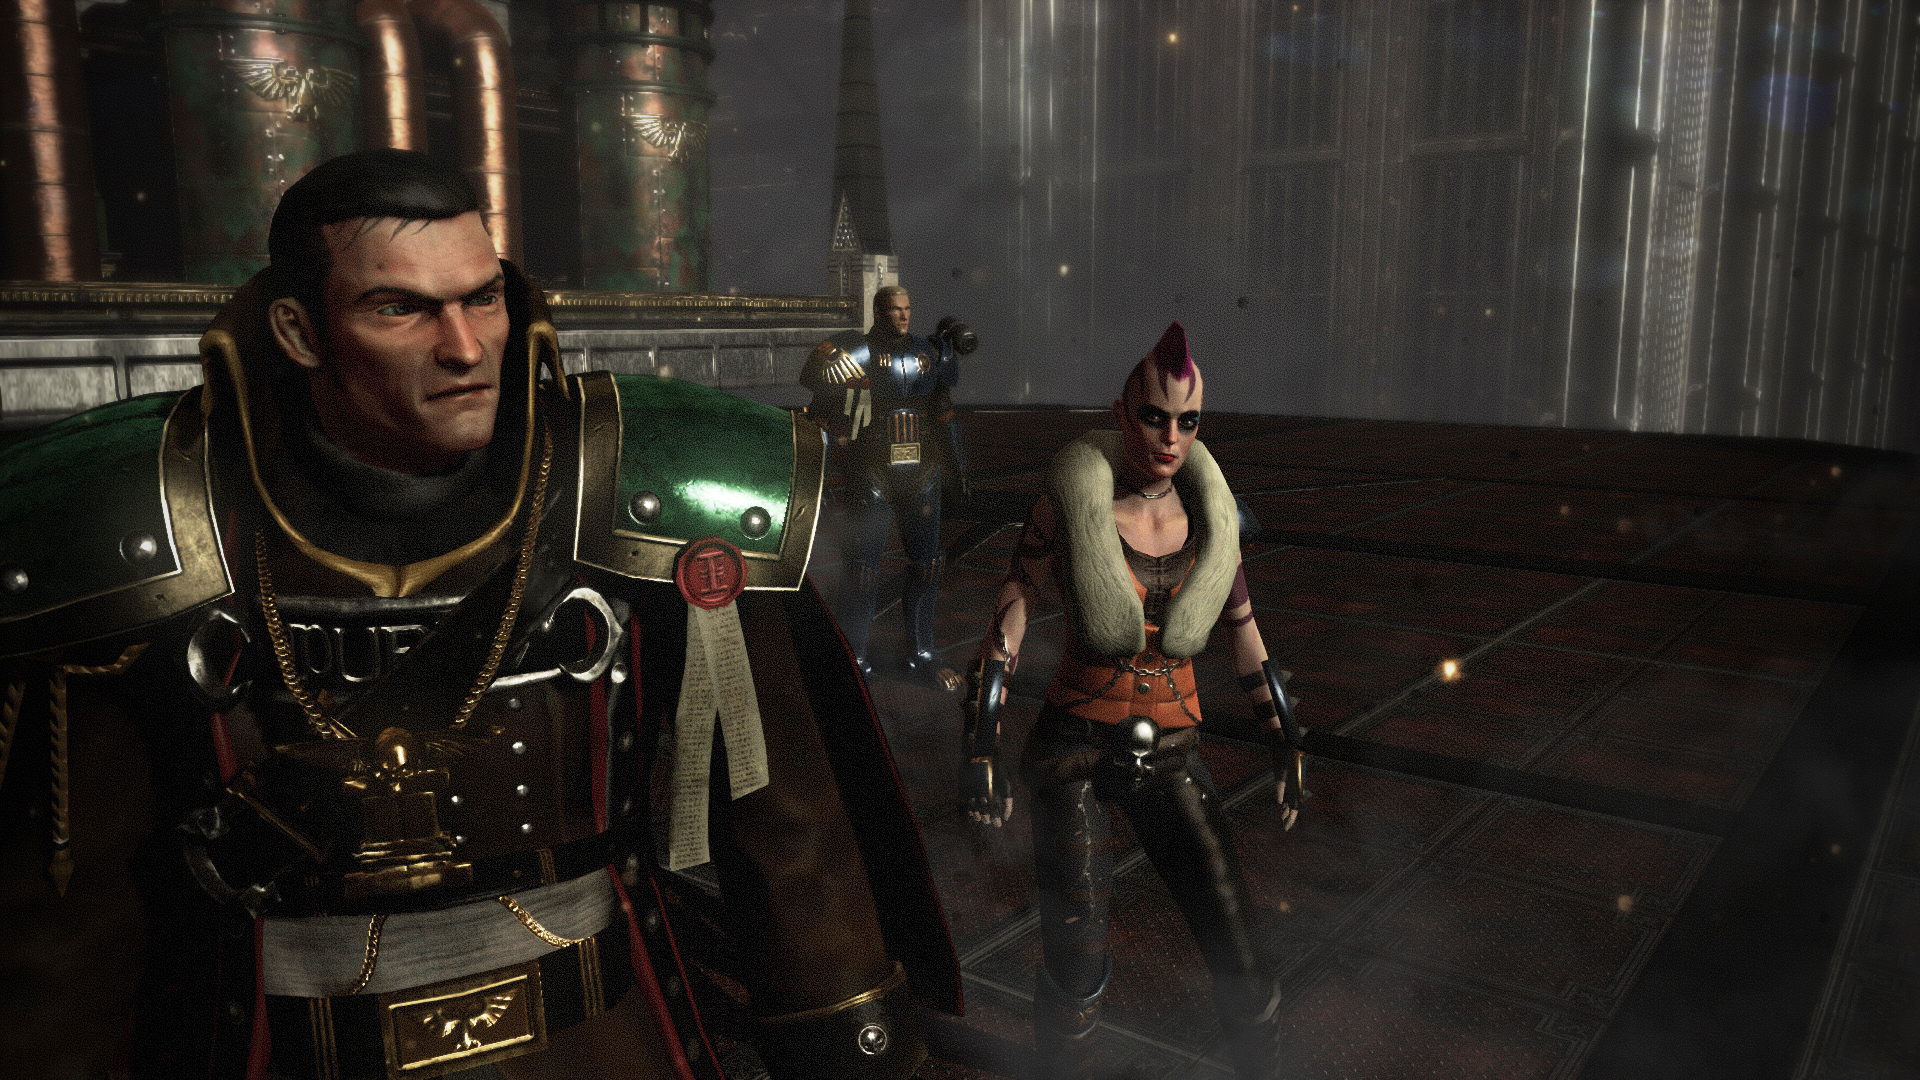 Warhammer spin-off Eisenhorn: Xenos shows you how to punch with a gun in new teaser